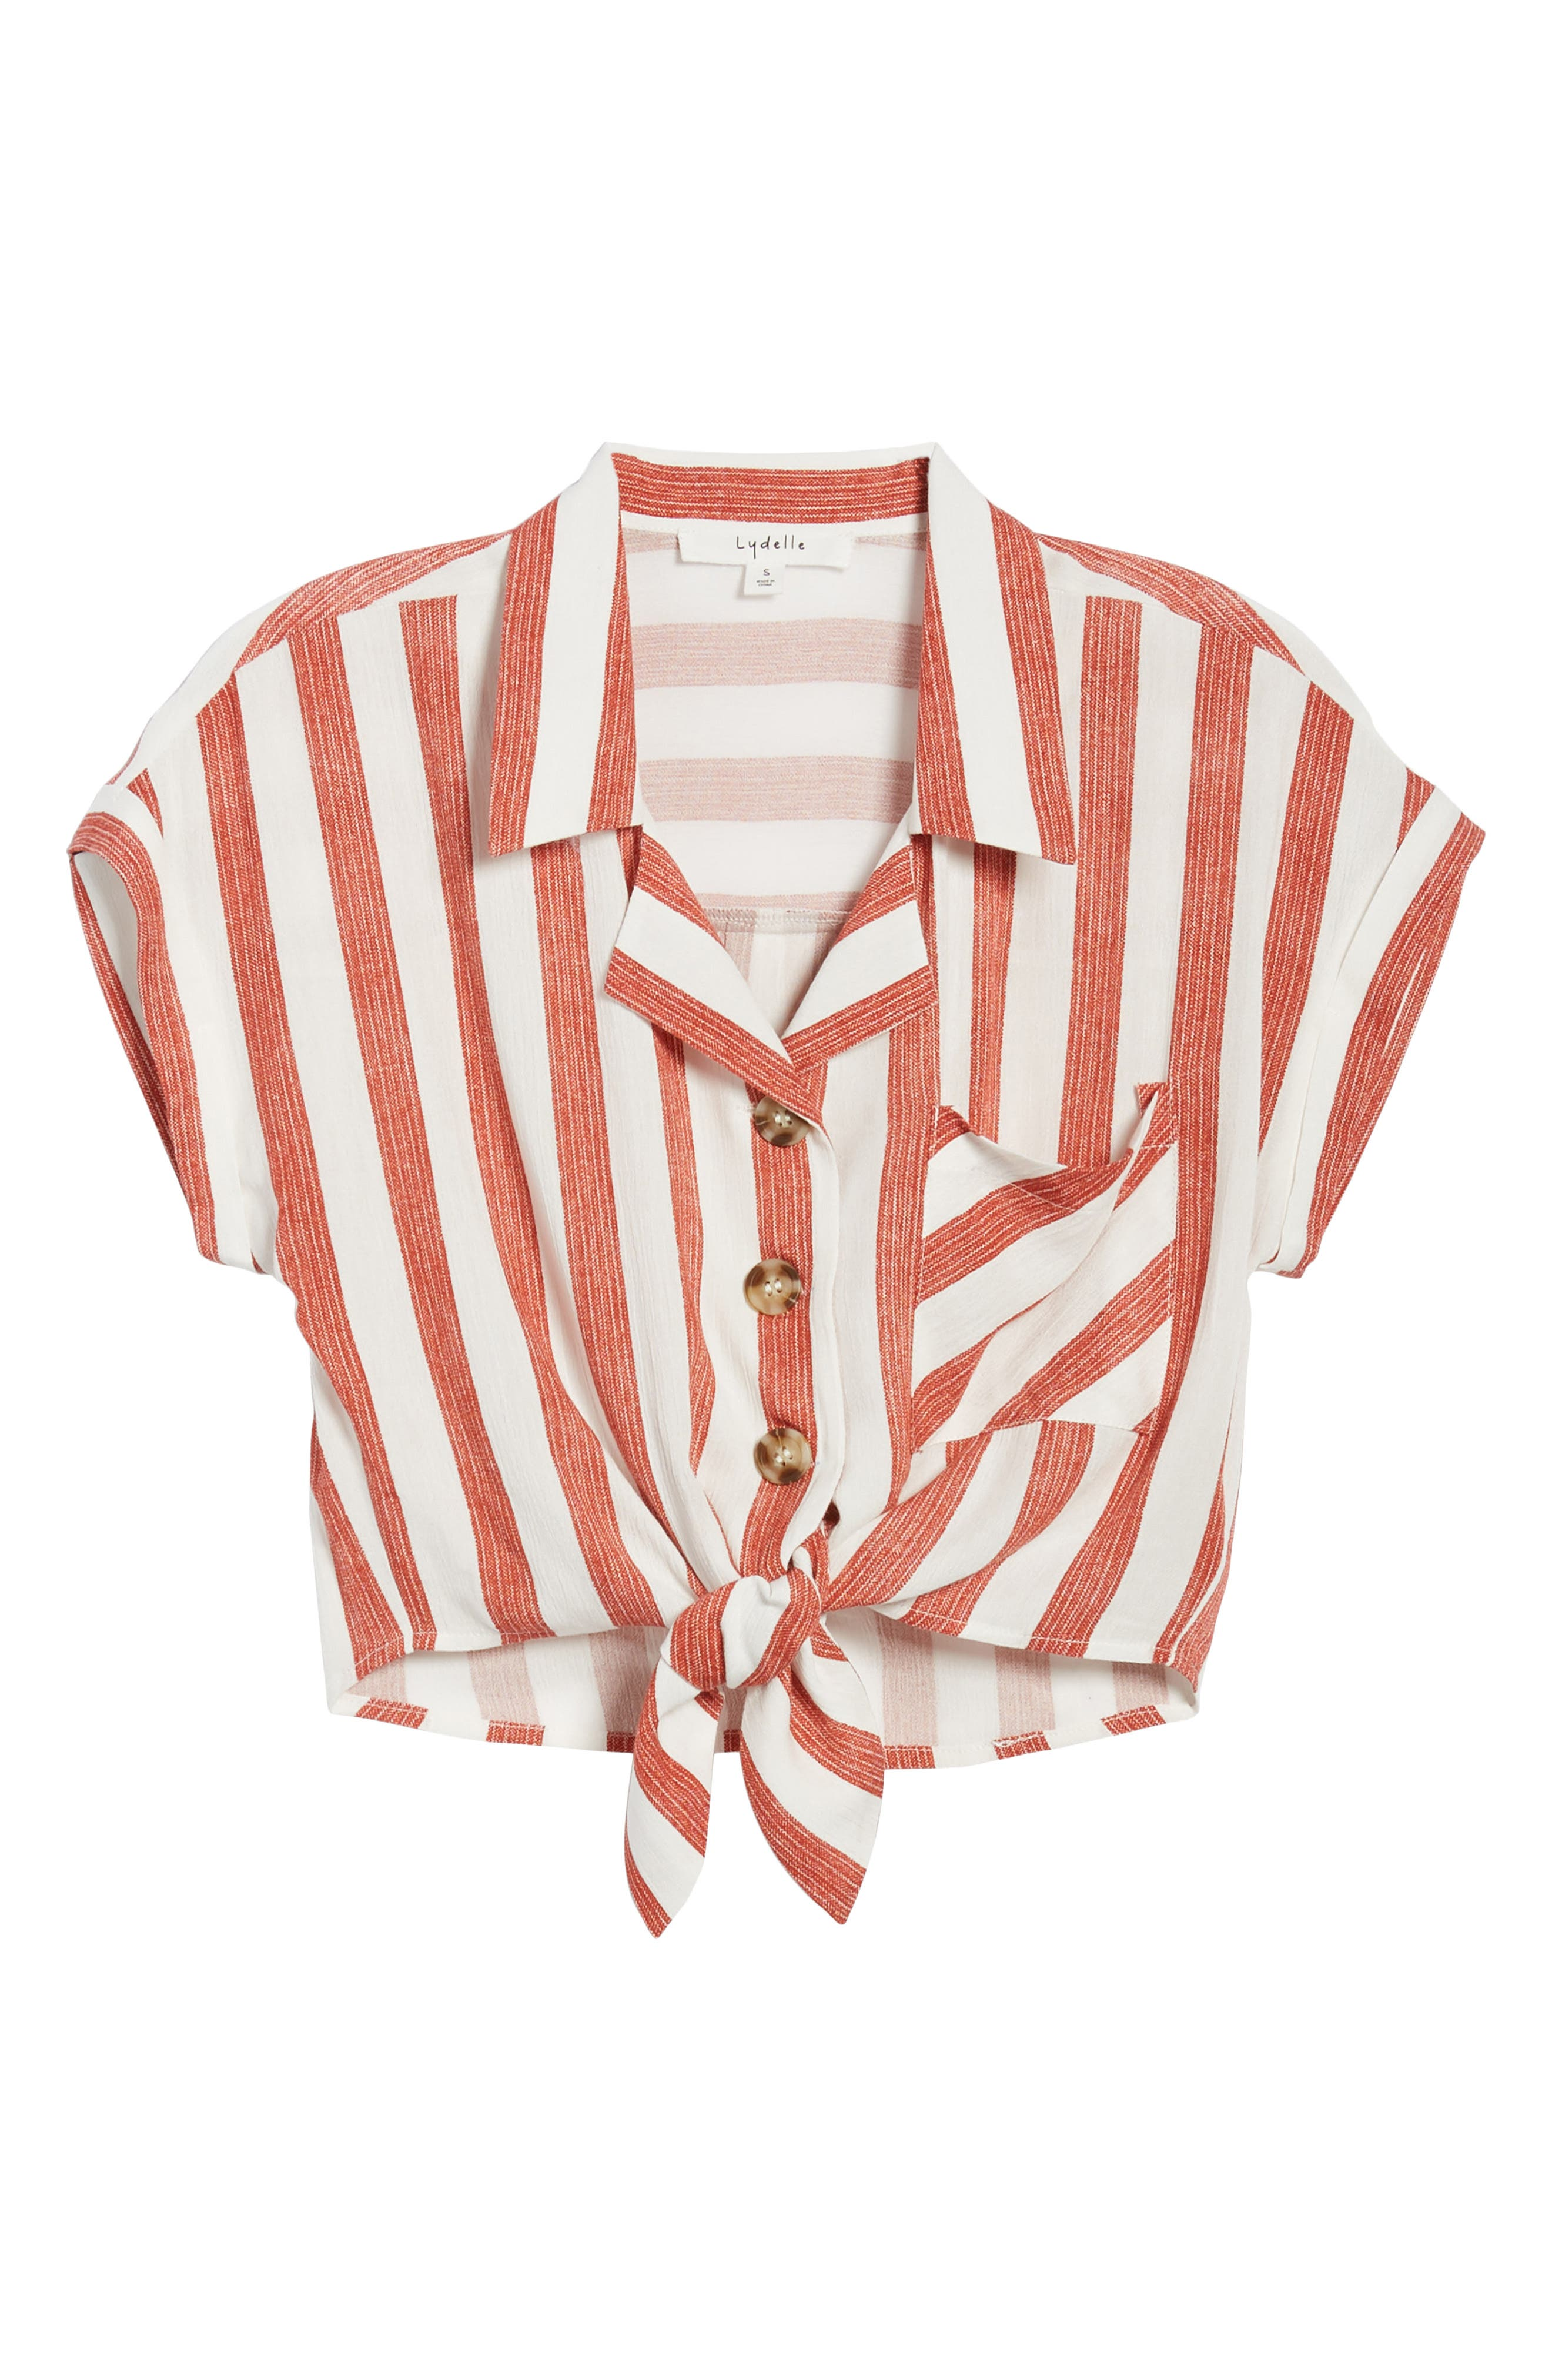 Stripe Tie Front Top,                             Alternate thumbnail 8, color,                             Red/ Ivory